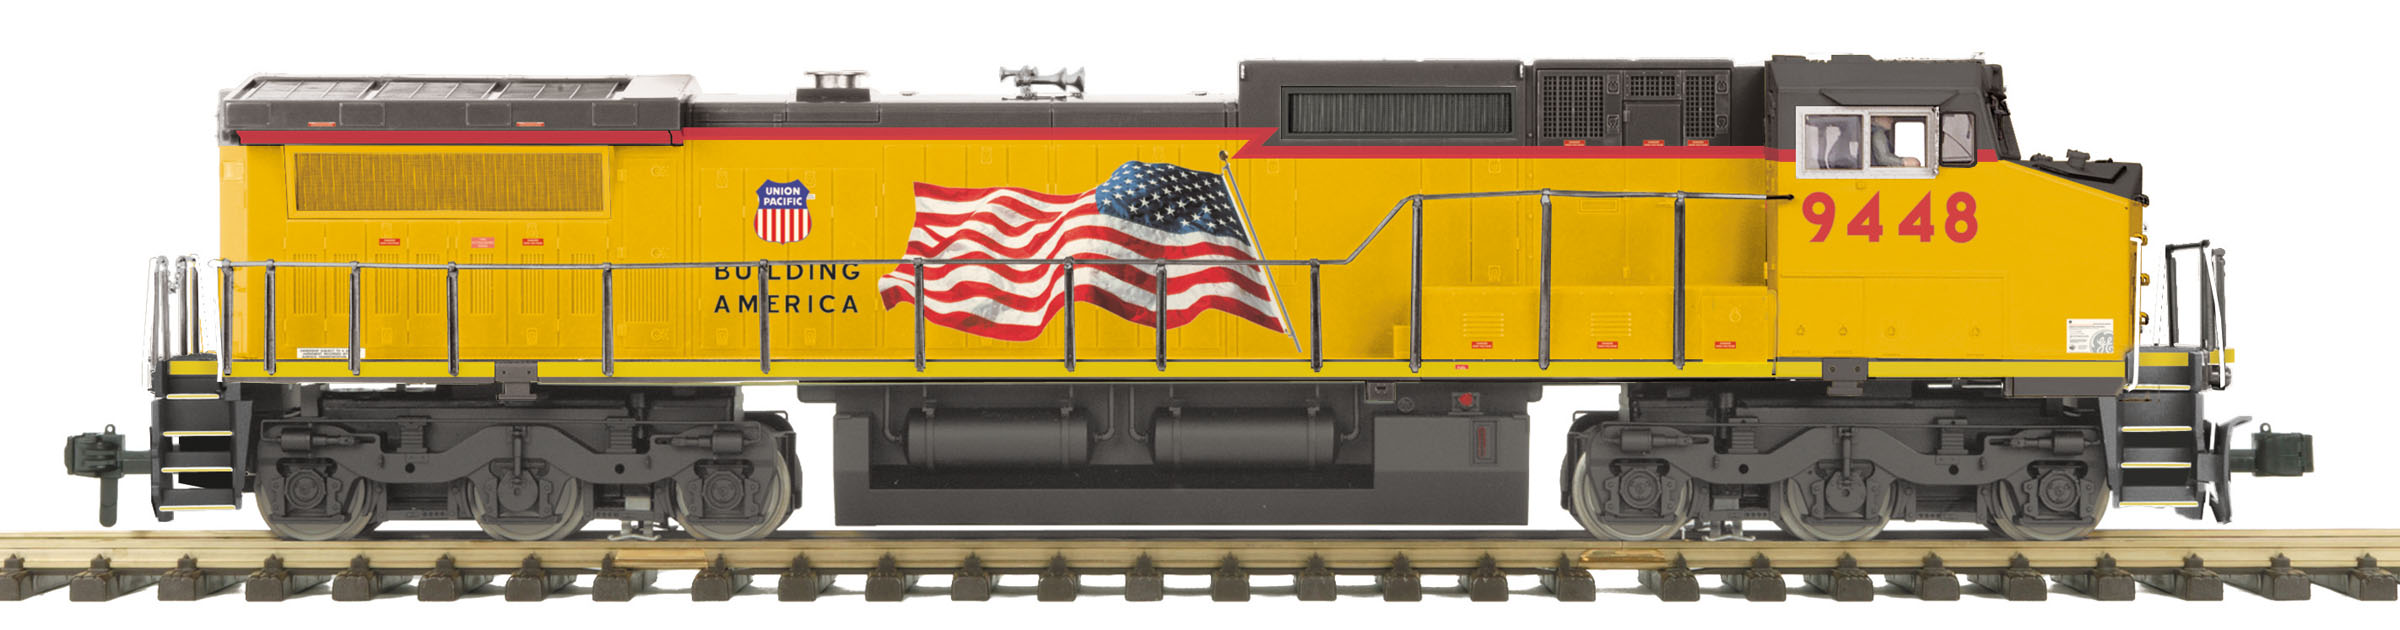 70-2099-1 | MTH ELECTRIC TRAINS